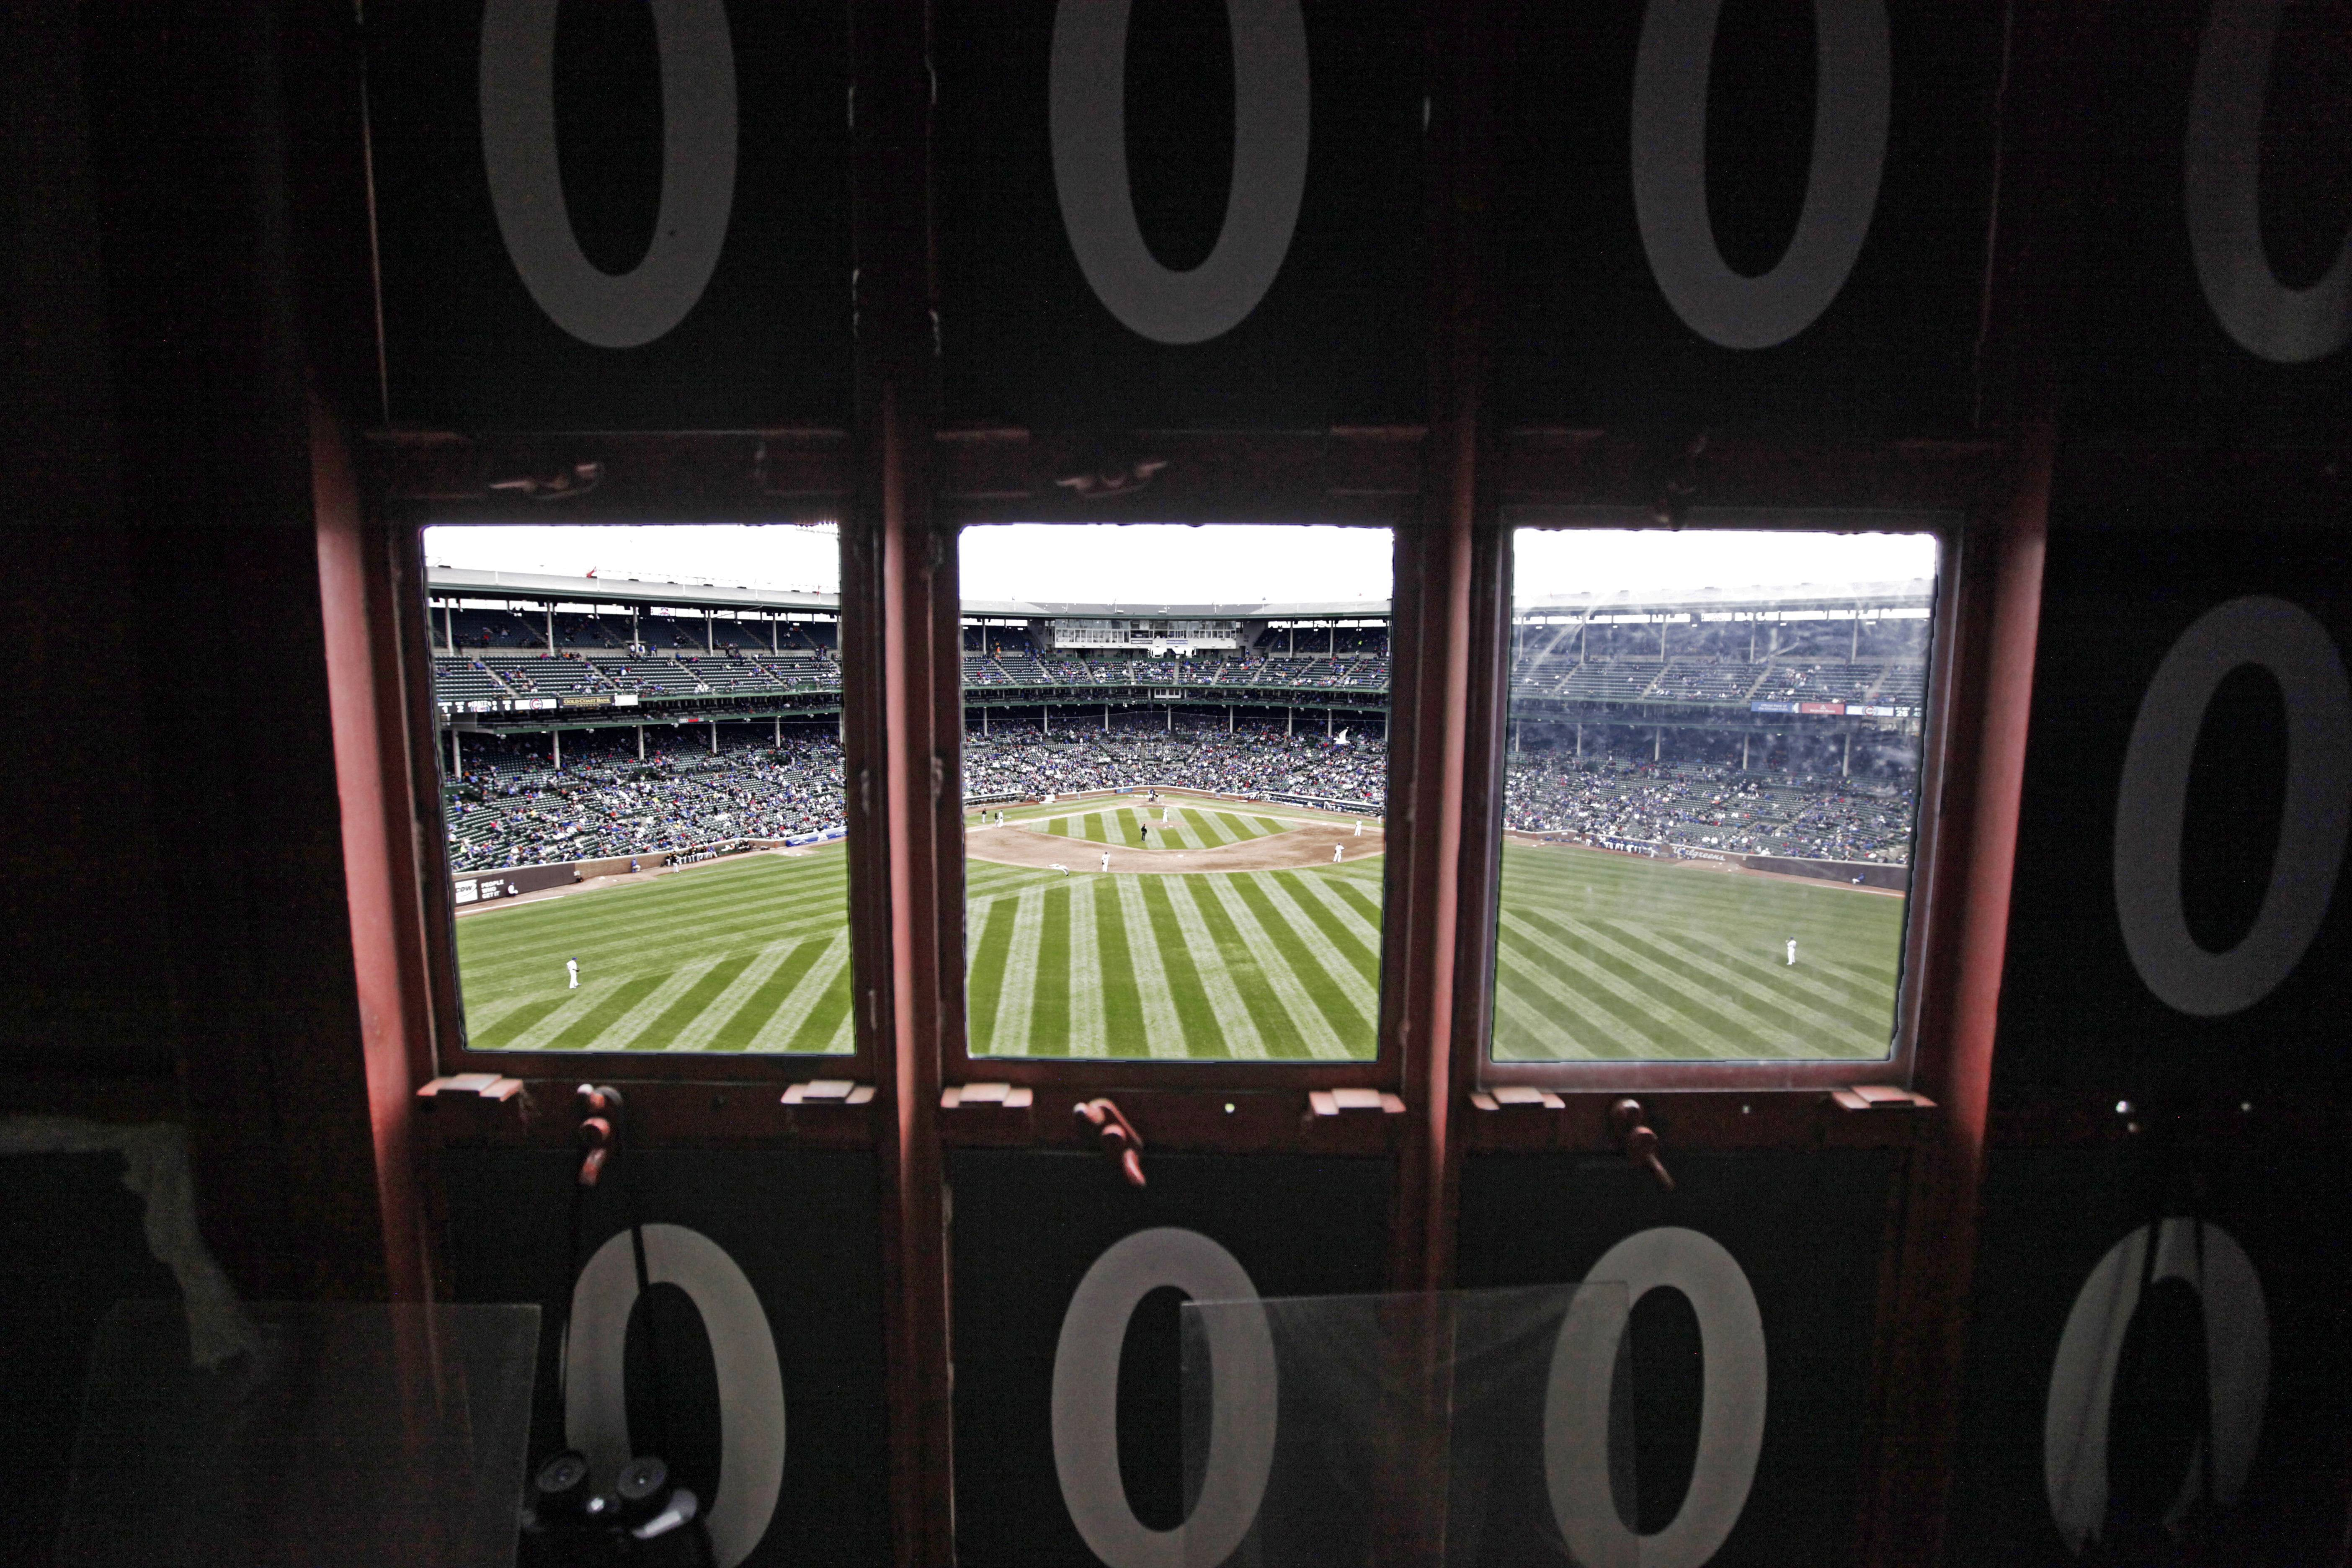 A view of the field from inside Wrigley Field's iconic scoreboard.